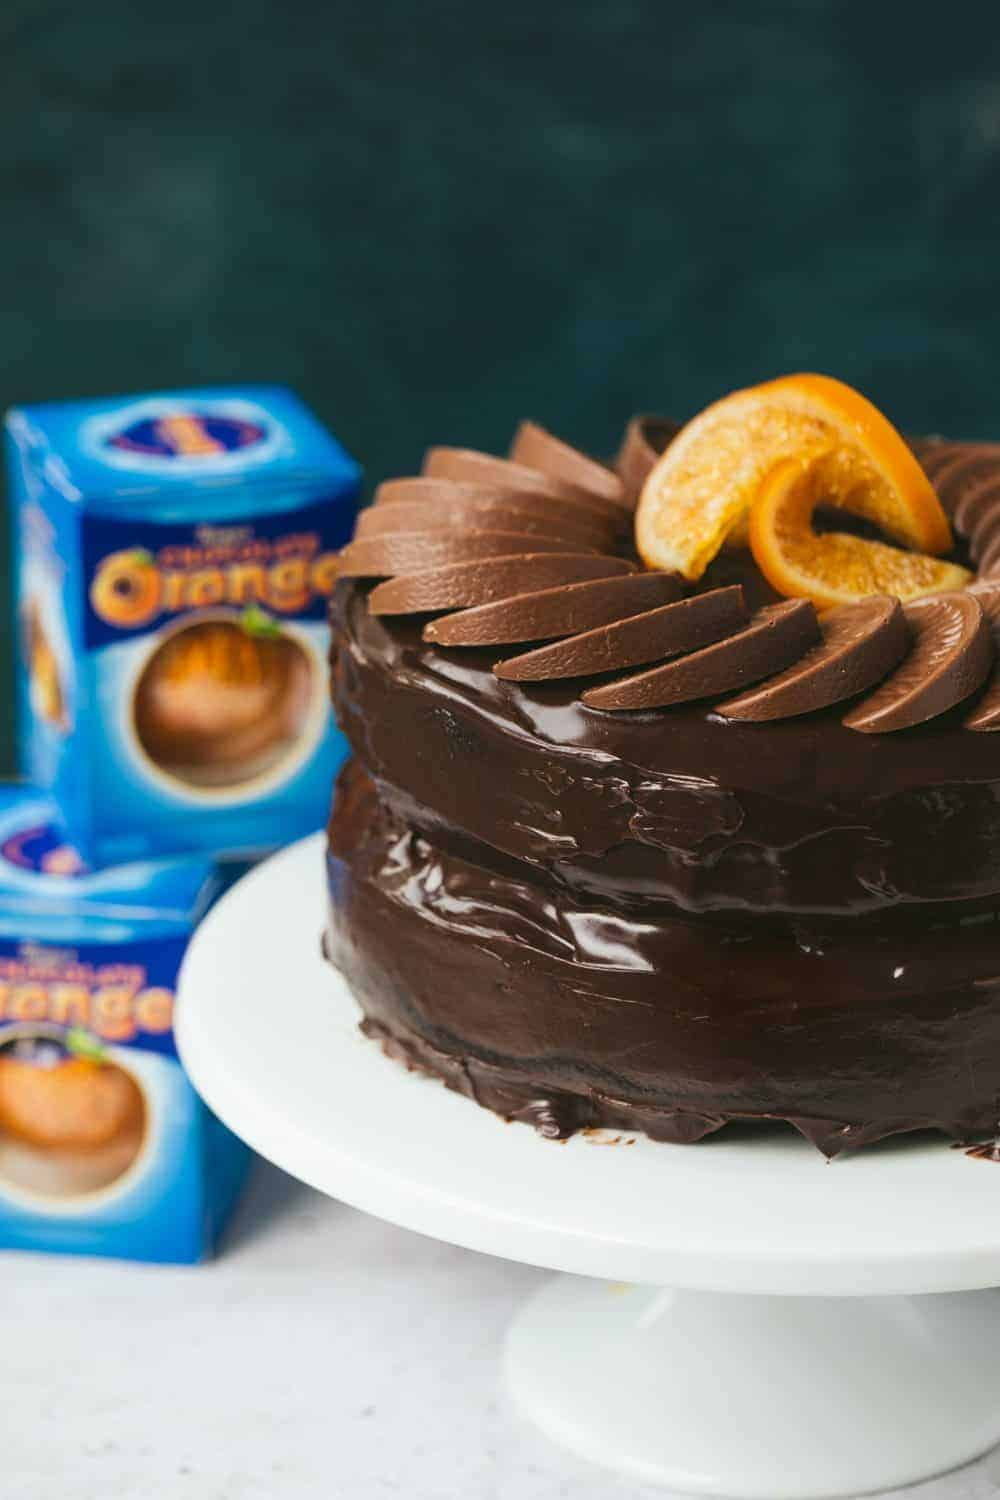 A chocolate orange cake topped with Terry's chocolate orange segments. There are 3 boxes of chocolate oranges visible in the background.